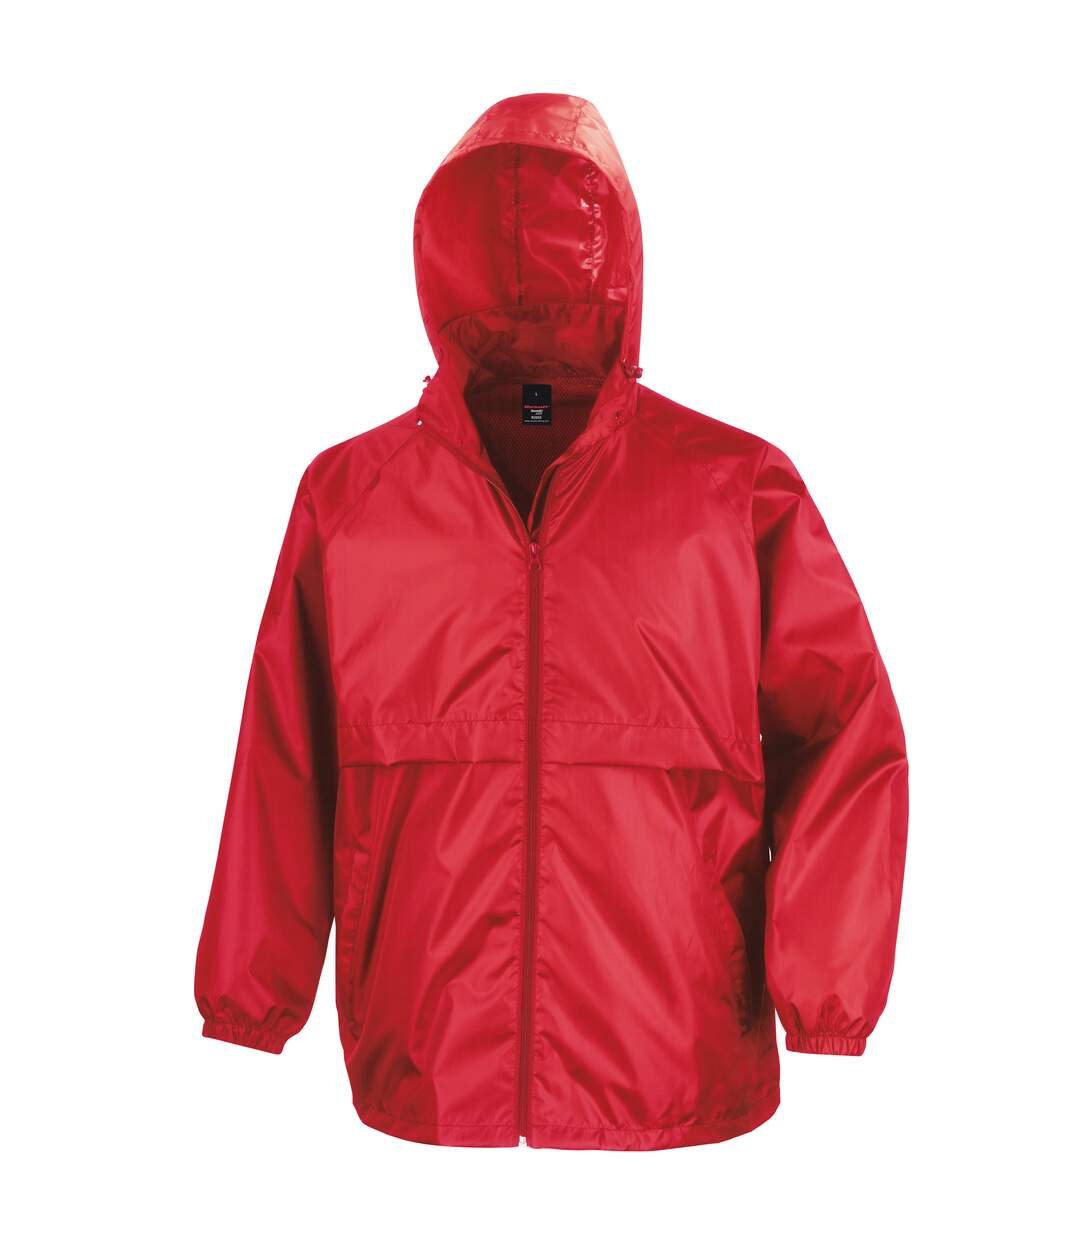 Result Mens Core Lightweight Waterproof Shield Windproof Jacket (Red) - UTBC898